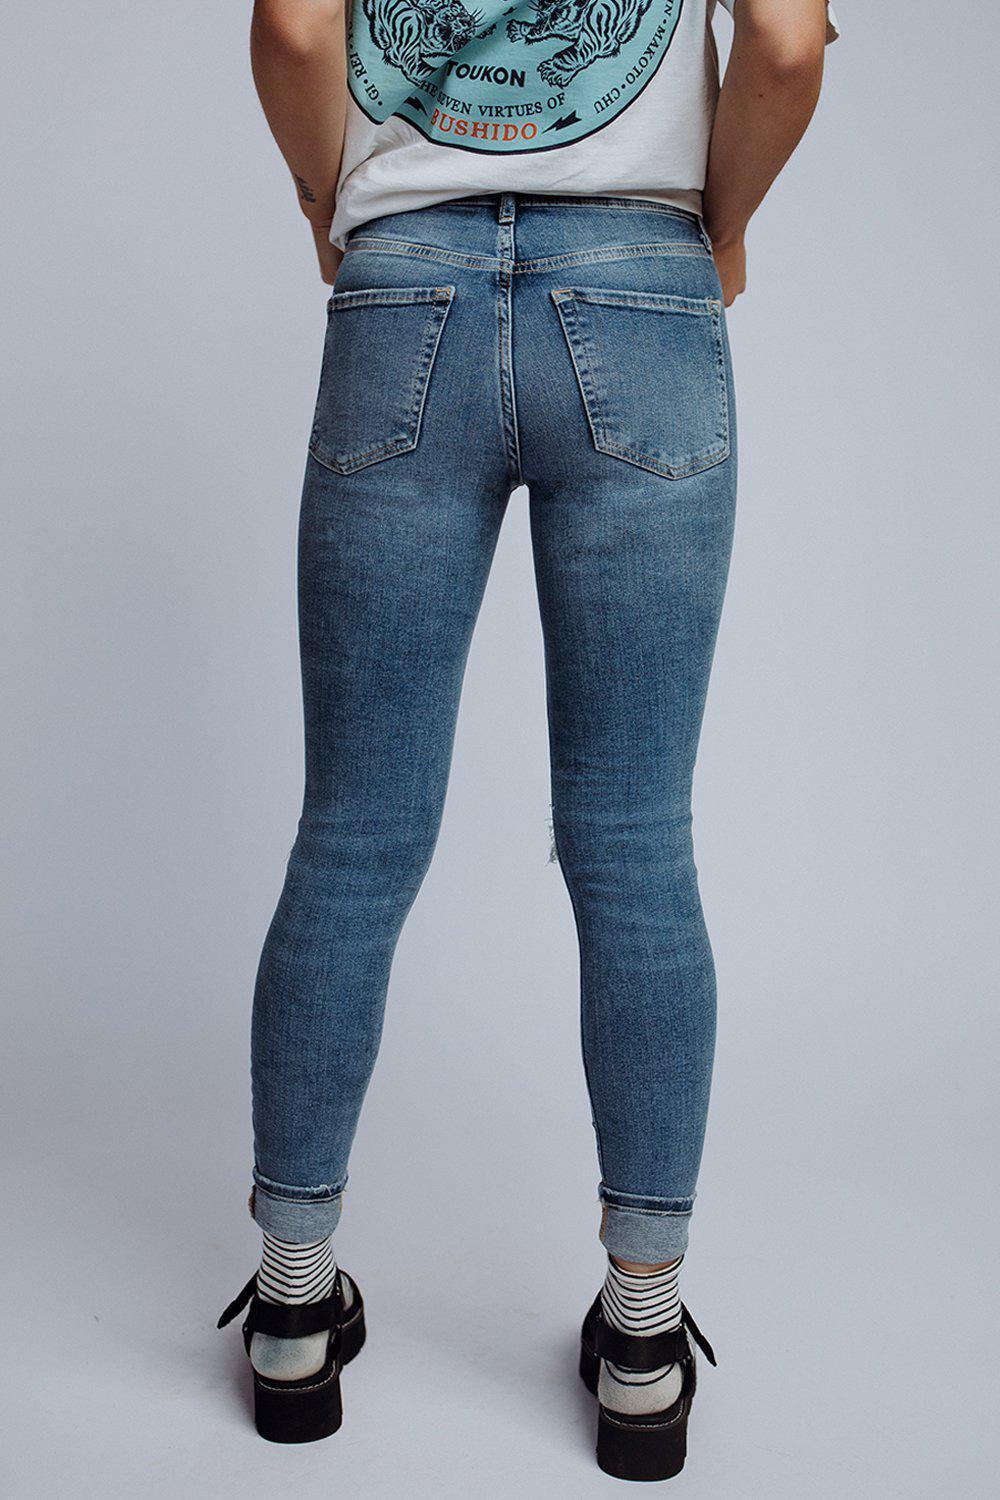 best_seller, Free People Busted Knee Skinny Jean in Navy, Bottom, women's clothing, dresses, skirts, coats, jackets, shoes, boots, tops, tee shirts, jeans, free people, levi's, rollas, jumpsuits, bottoms, tops, sweaters, pullovers, pants, shorts, sweats,.